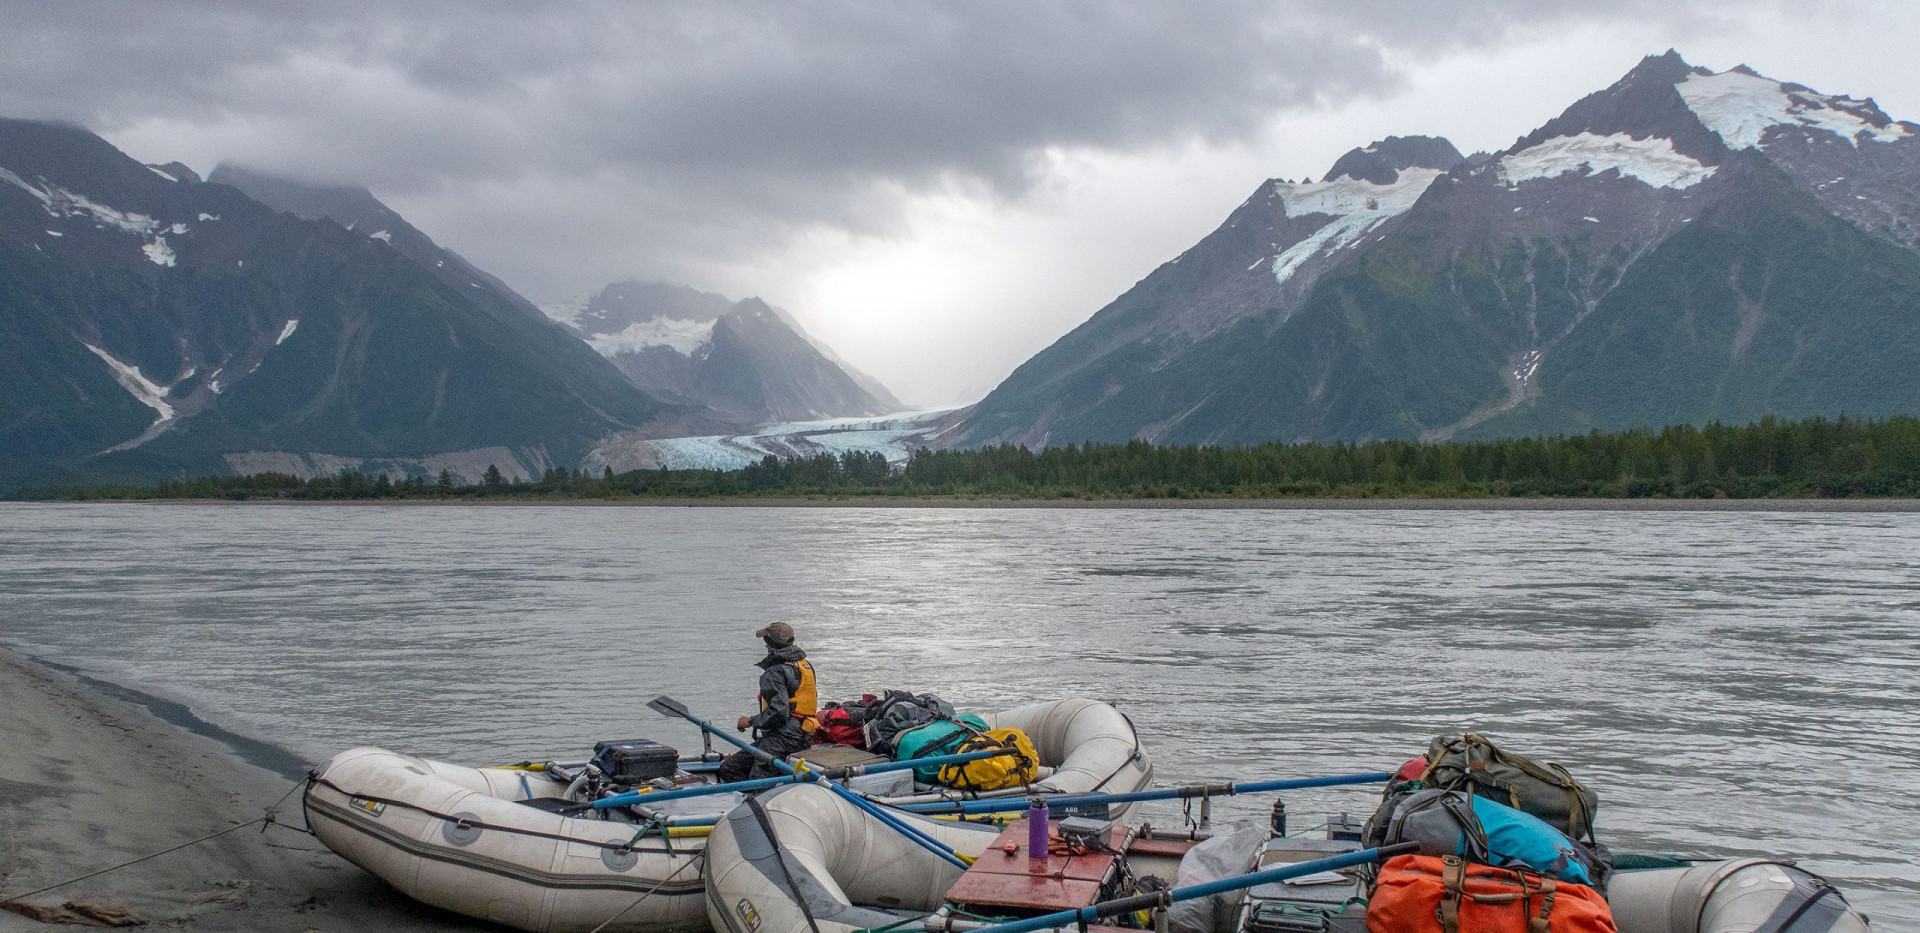 Tatshenshini River Rafting Alaska - Walker Glacier. Photo: Pete Wallstrom